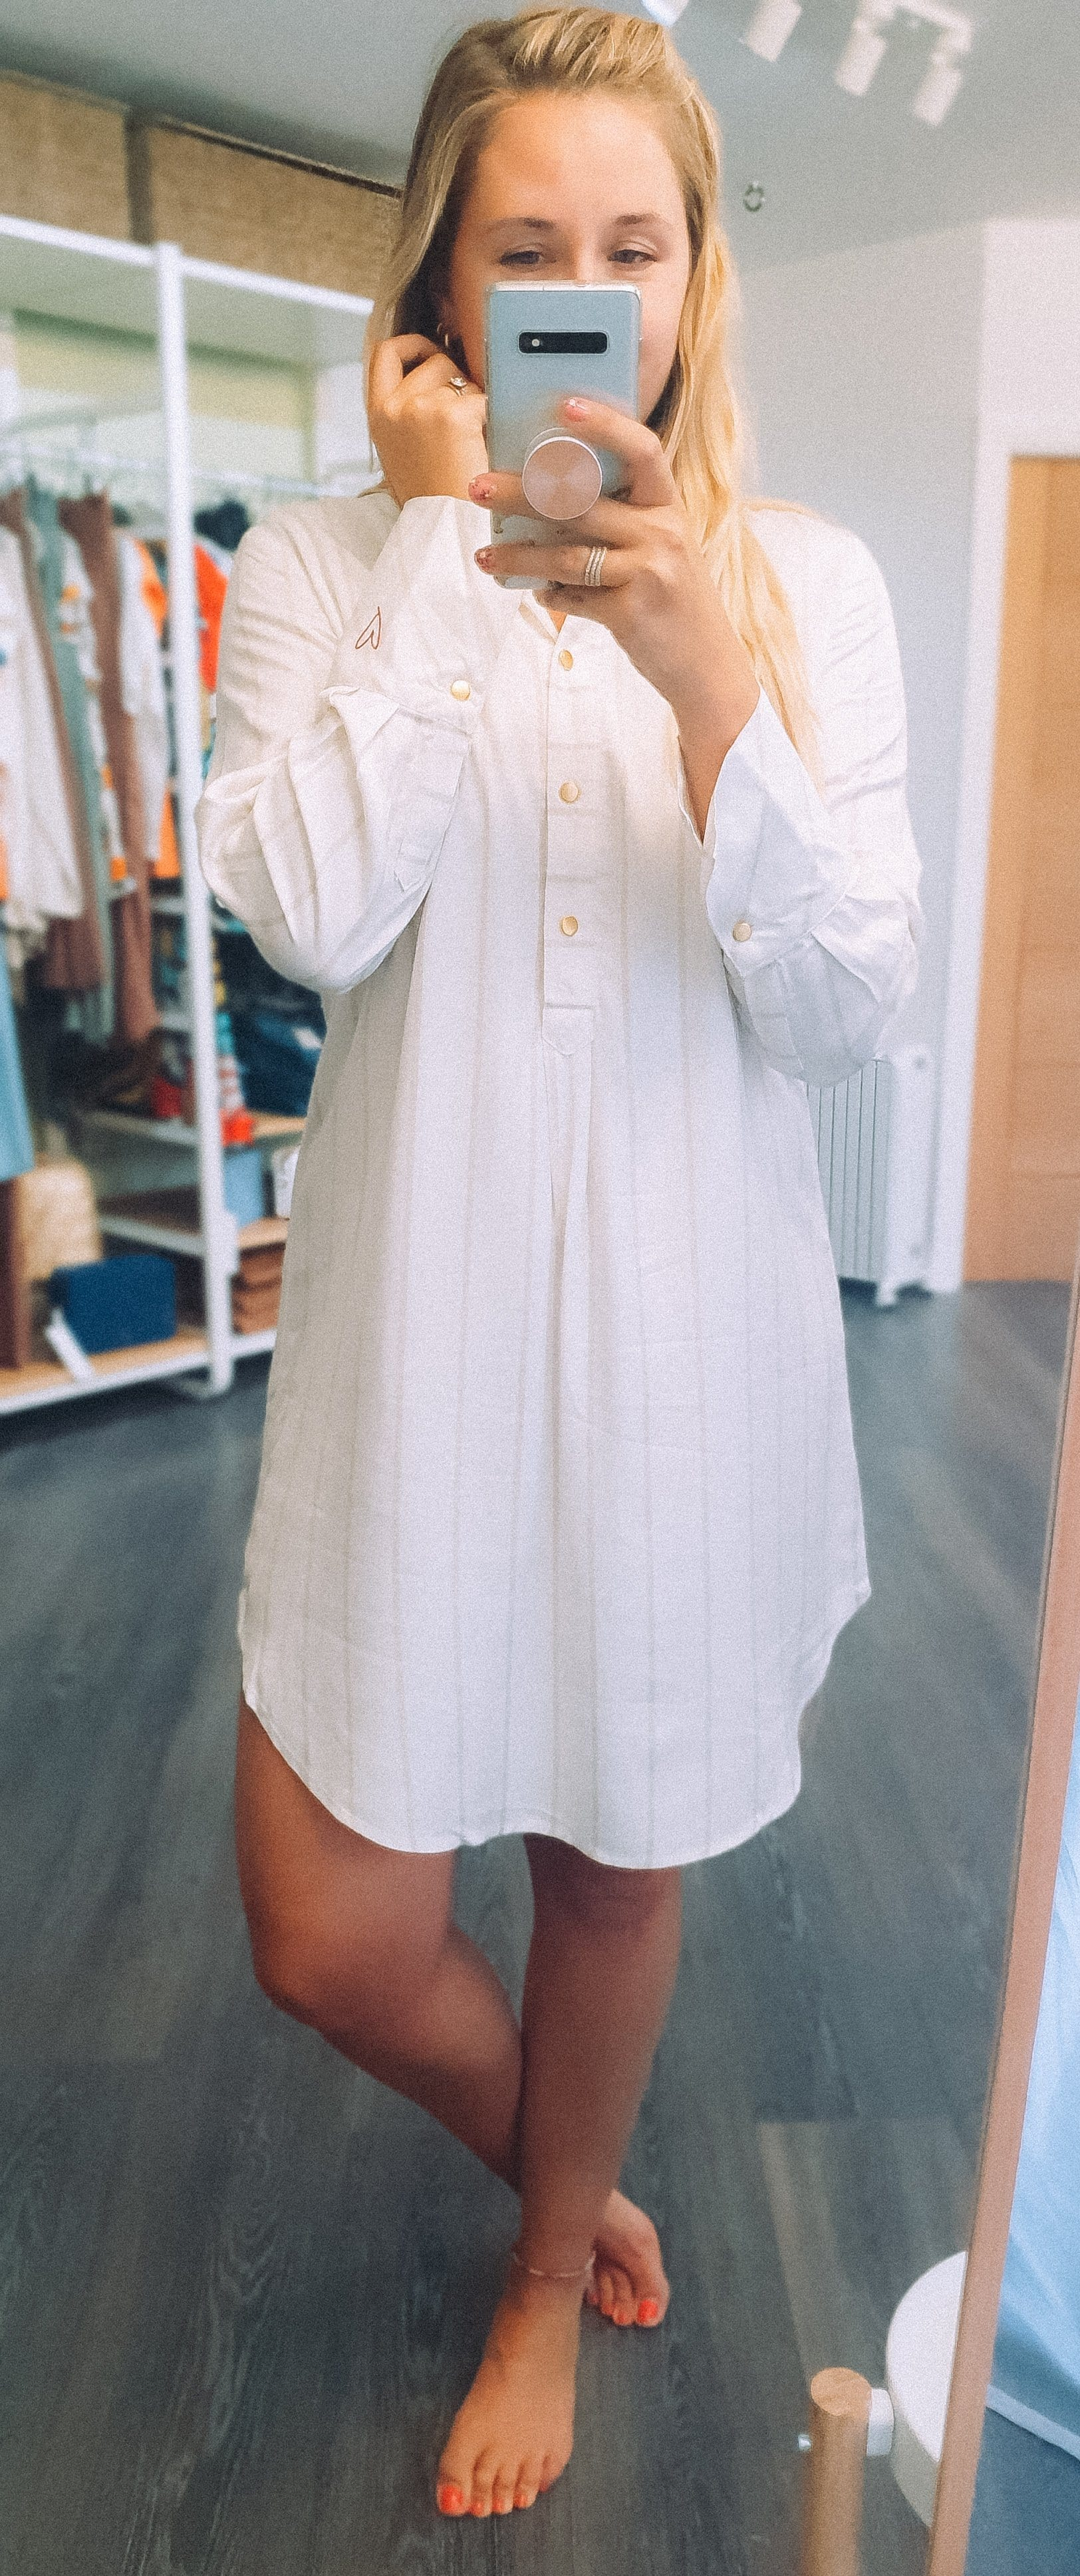 The Numph shirt dress